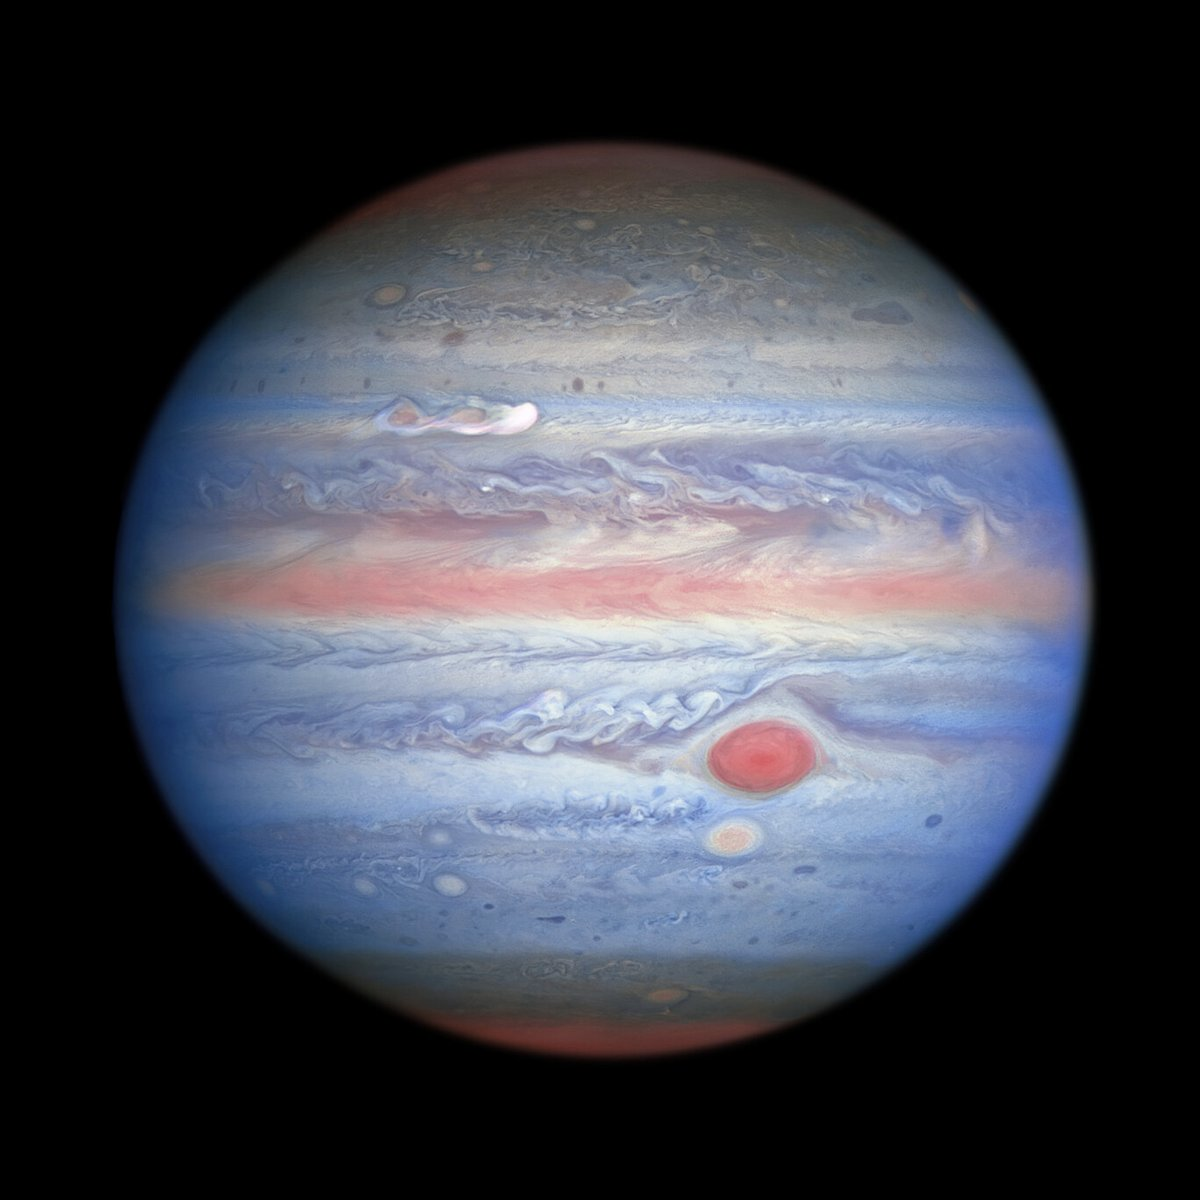 📸 #Jupiter: as you might not have seen it before. These observations in ultraviolet/visible/near-infrared light made by the NASA/ESA @HUBBLE_space Telescope on 25 August are giving researchers an entirely new view of the giant planet 👉 https://t.co/2pLURdg34R @esascience https://t.co/Gj0YYtKwjl